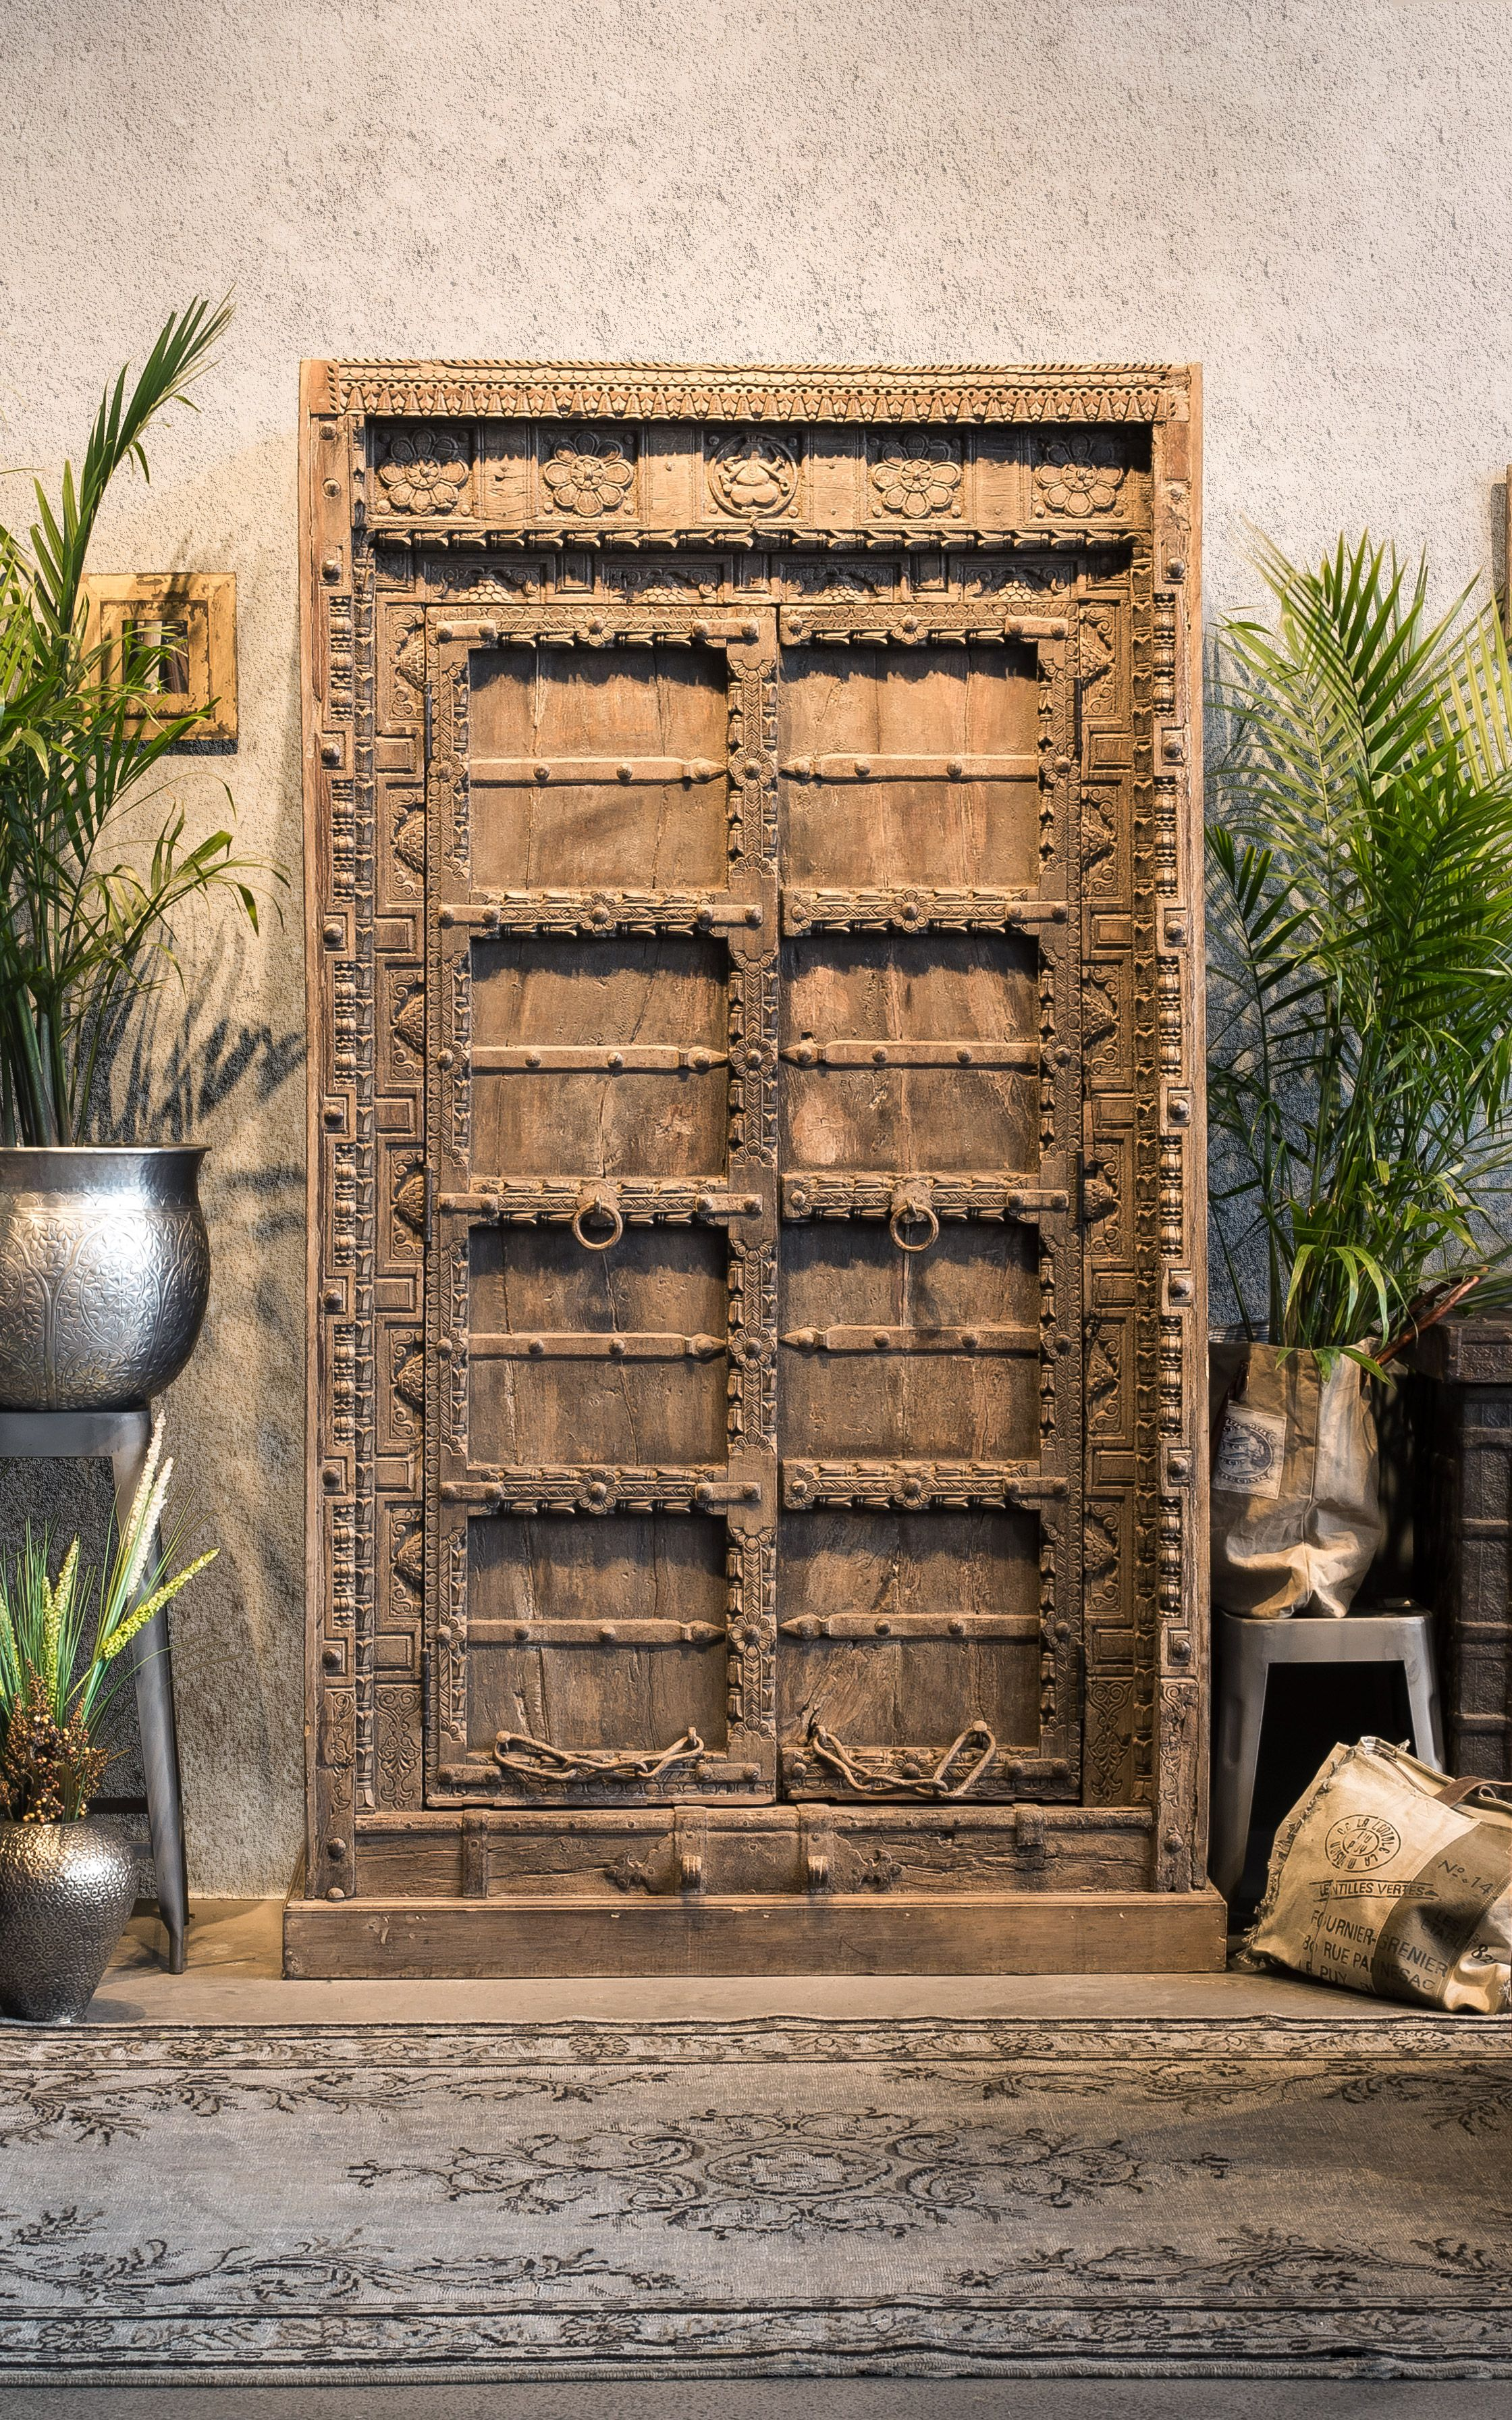 300 Year Old Antique Door Armoire From India With